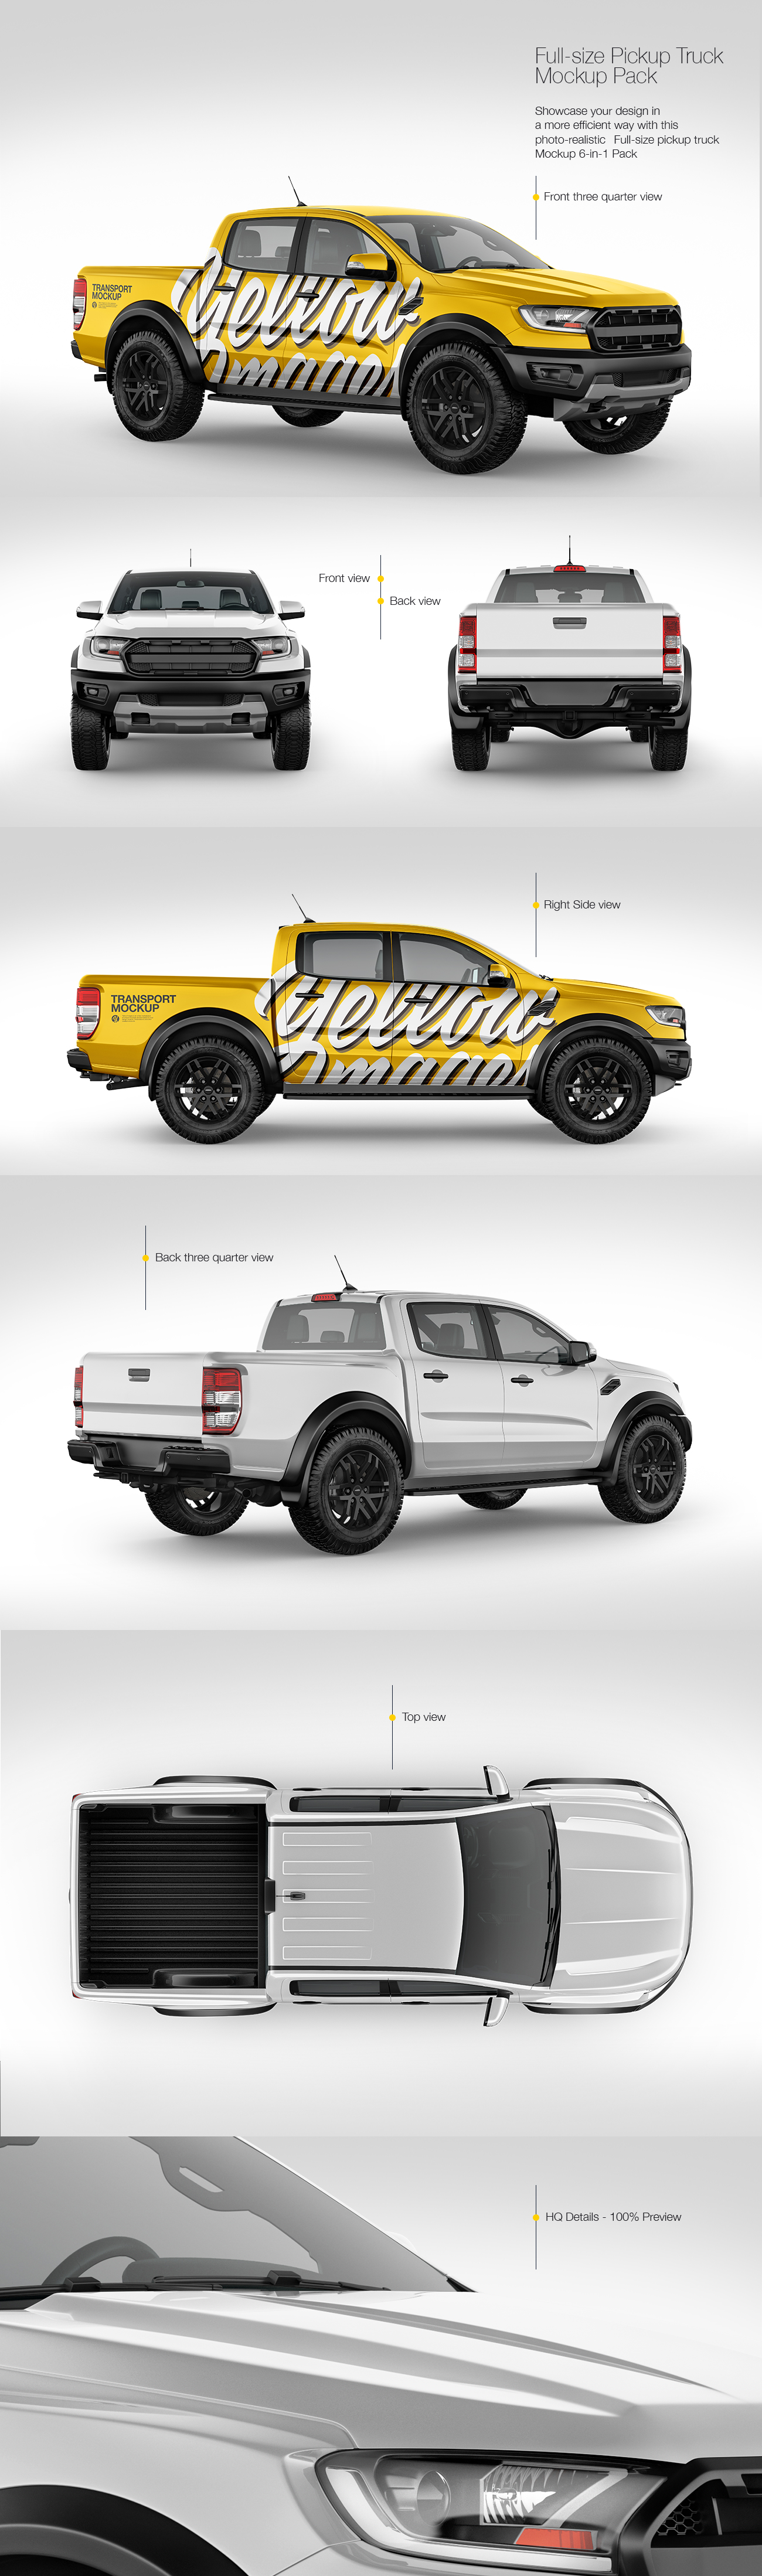 Download Full Size Pickup Truck Mockup Pack In Handpicked Sets Of Vehicles On Yellow Images Creative Store PSD Mockup Templates